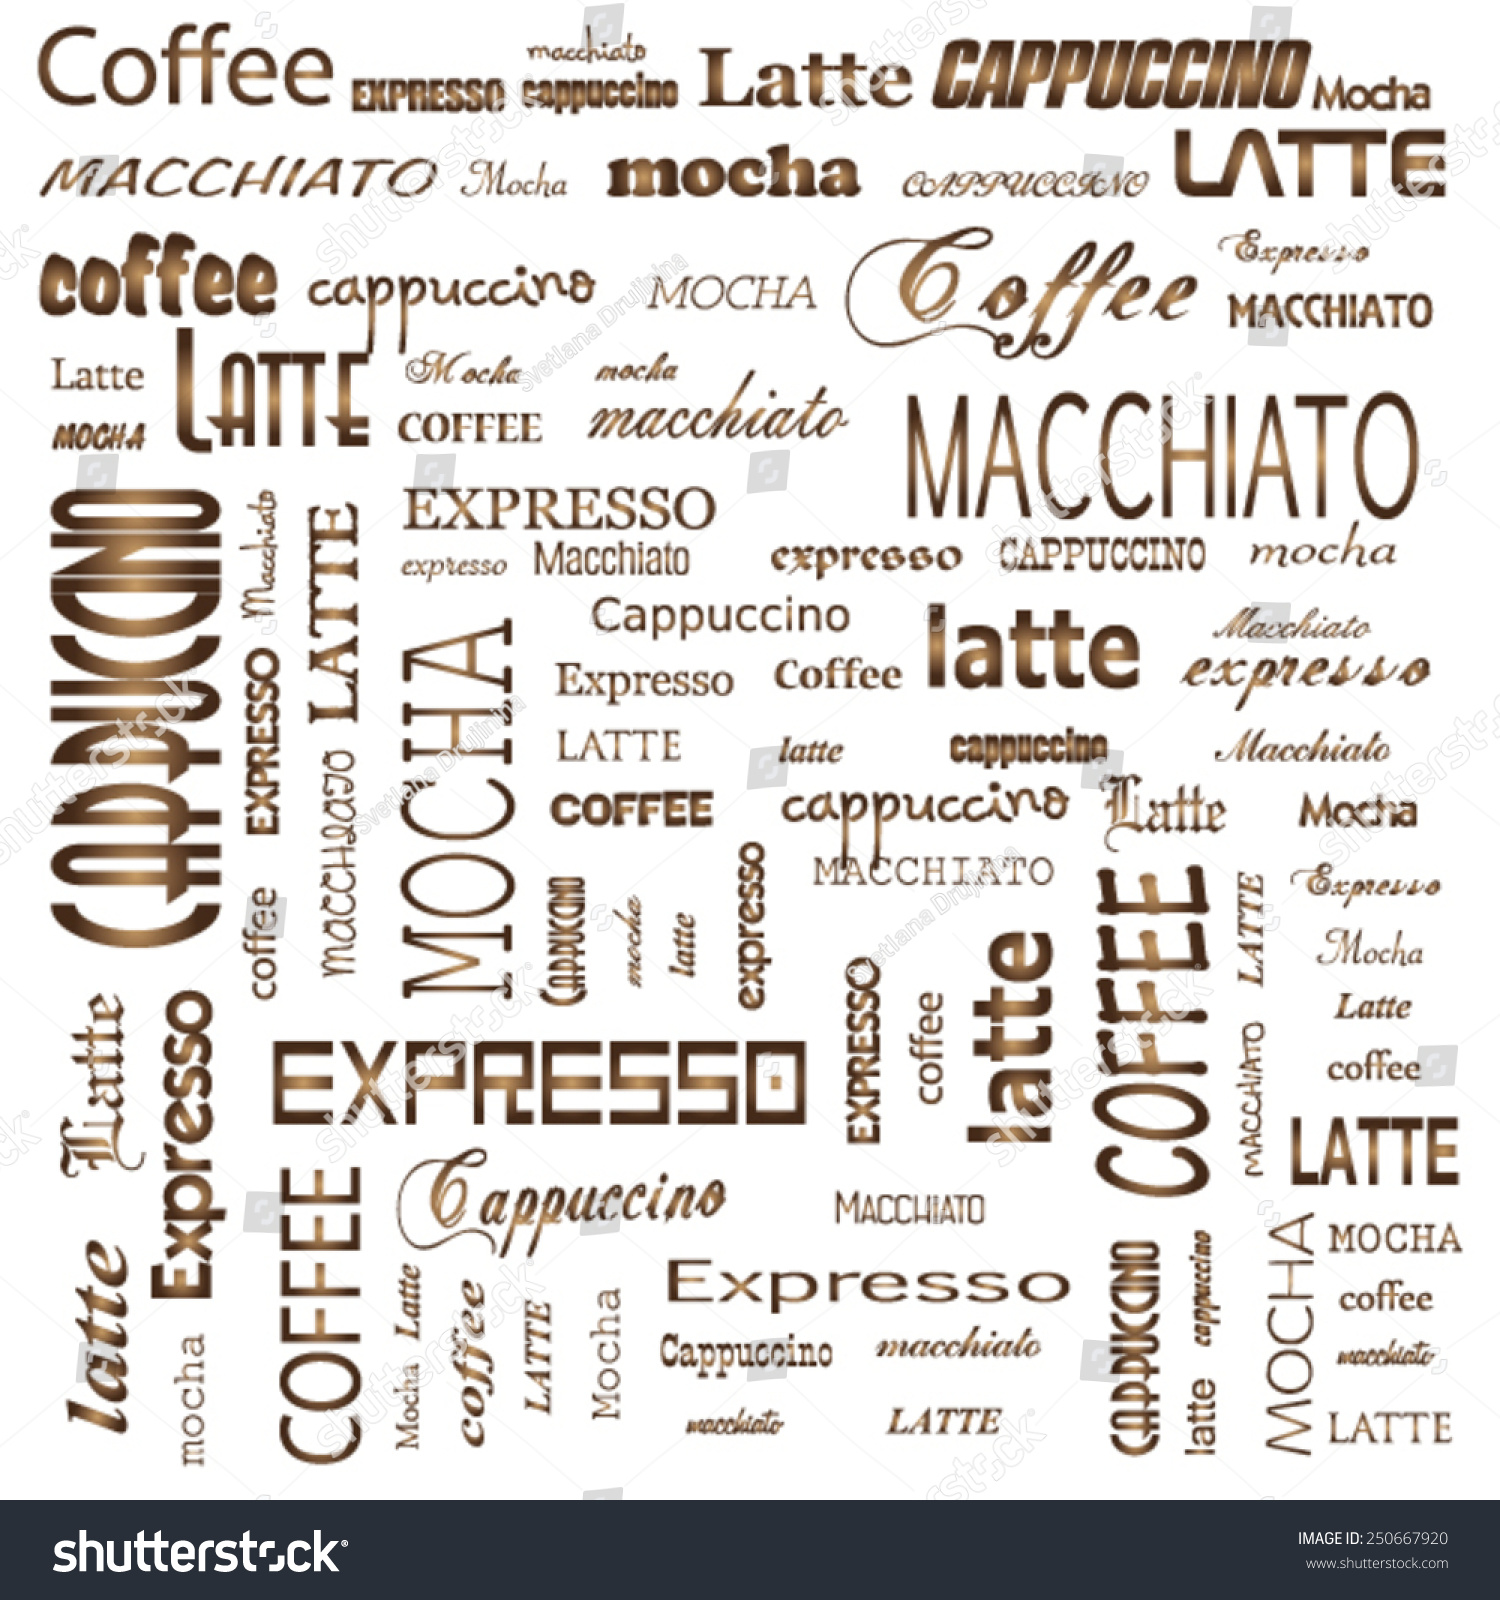 H tag background image - Seamless Background Pattern Coffee Espresso Cappuccino Macchiato Word Cloud Tag Cloud Text Business Concept Word Collage Vector Illustration